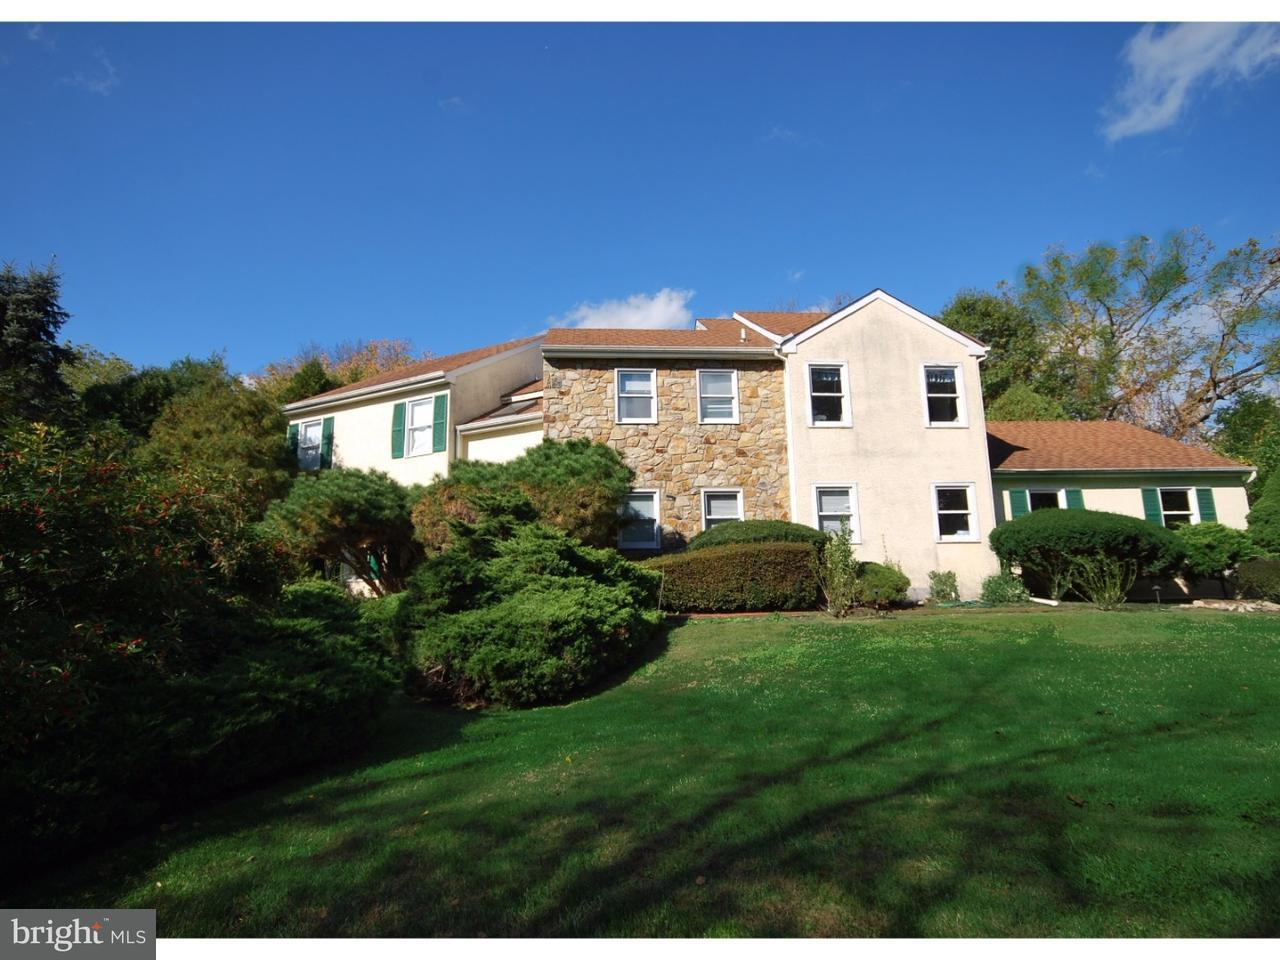 Single Family Home for Rent at 455 RED COAT LN #B Wayne, Pennsylvania 19087 United States